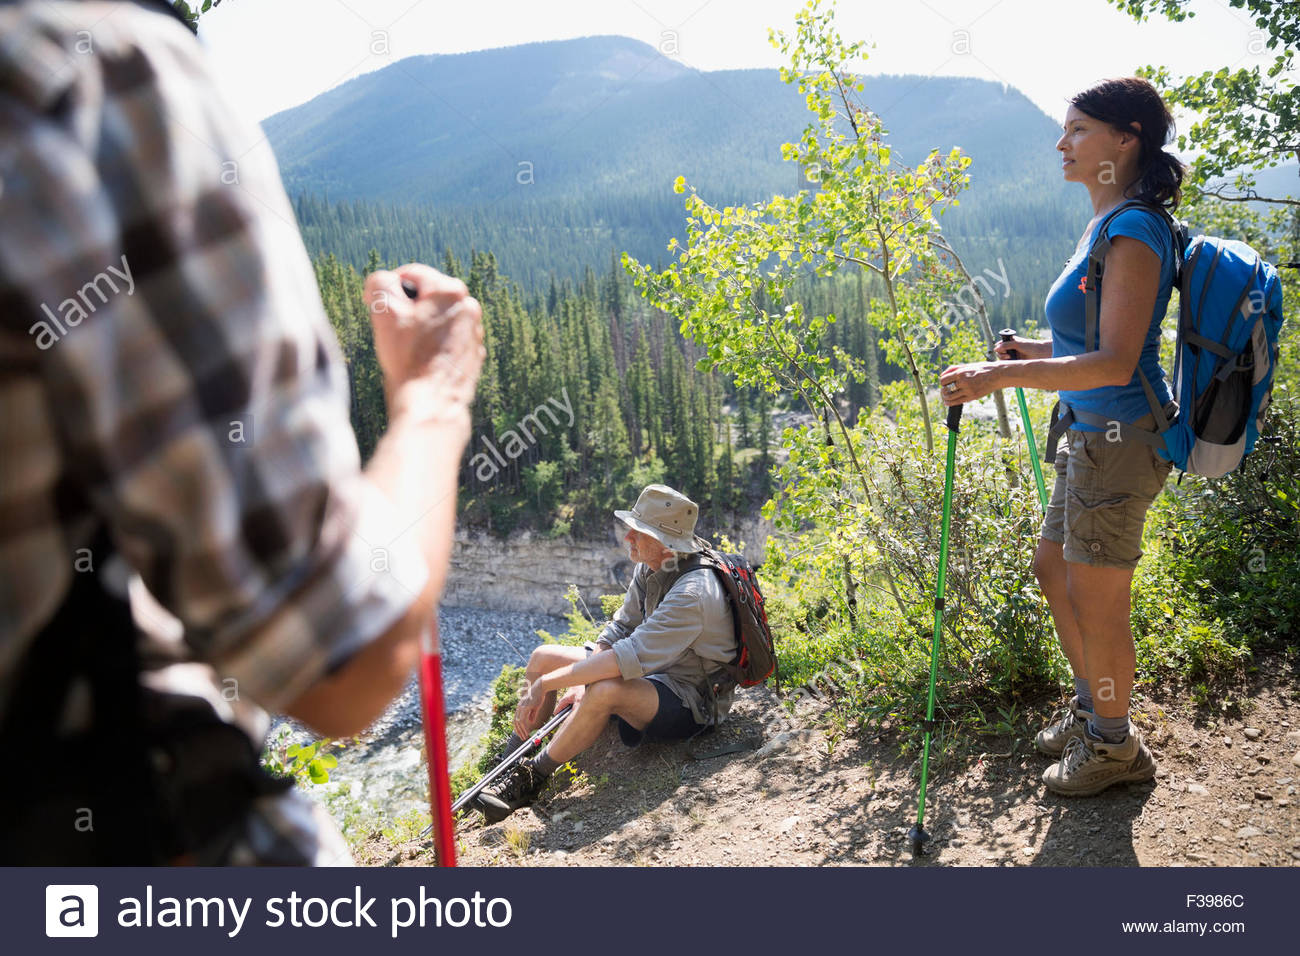 Hikers poles taking a break and looking view - Stock Image